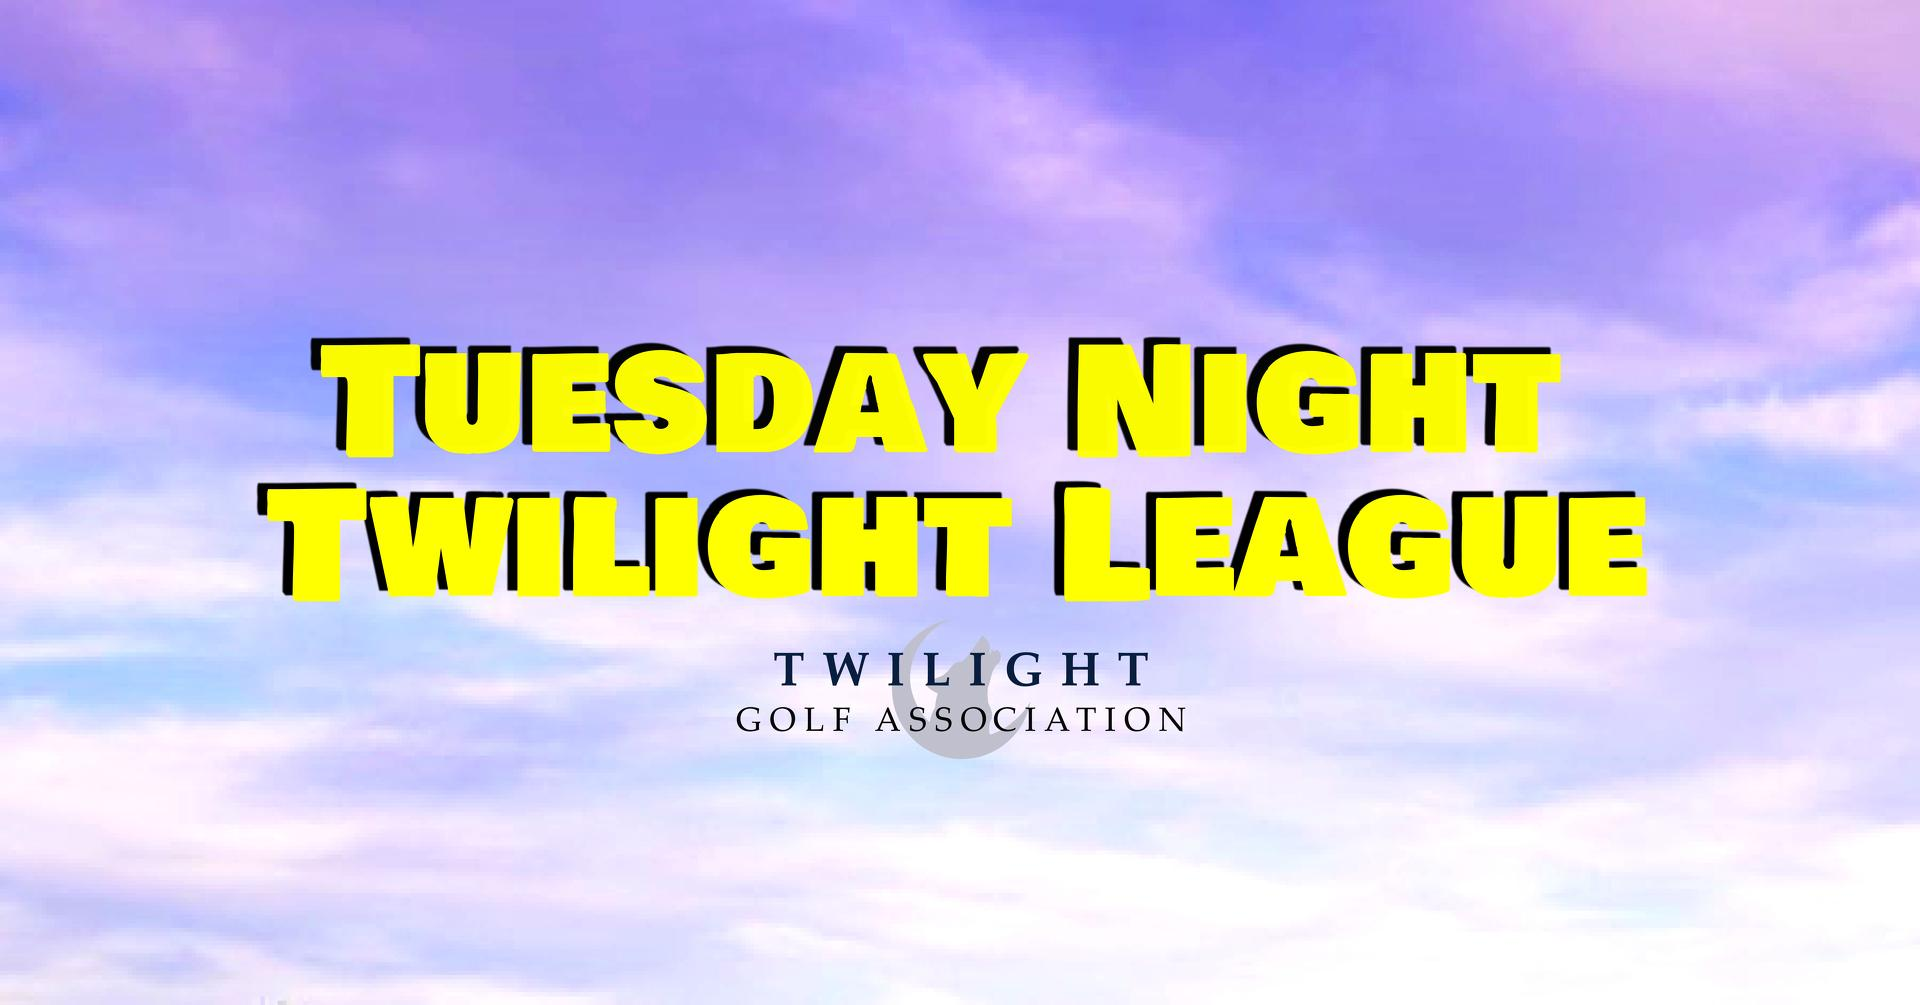 Tuesday Twilight League at 3 Lakes Golf Course